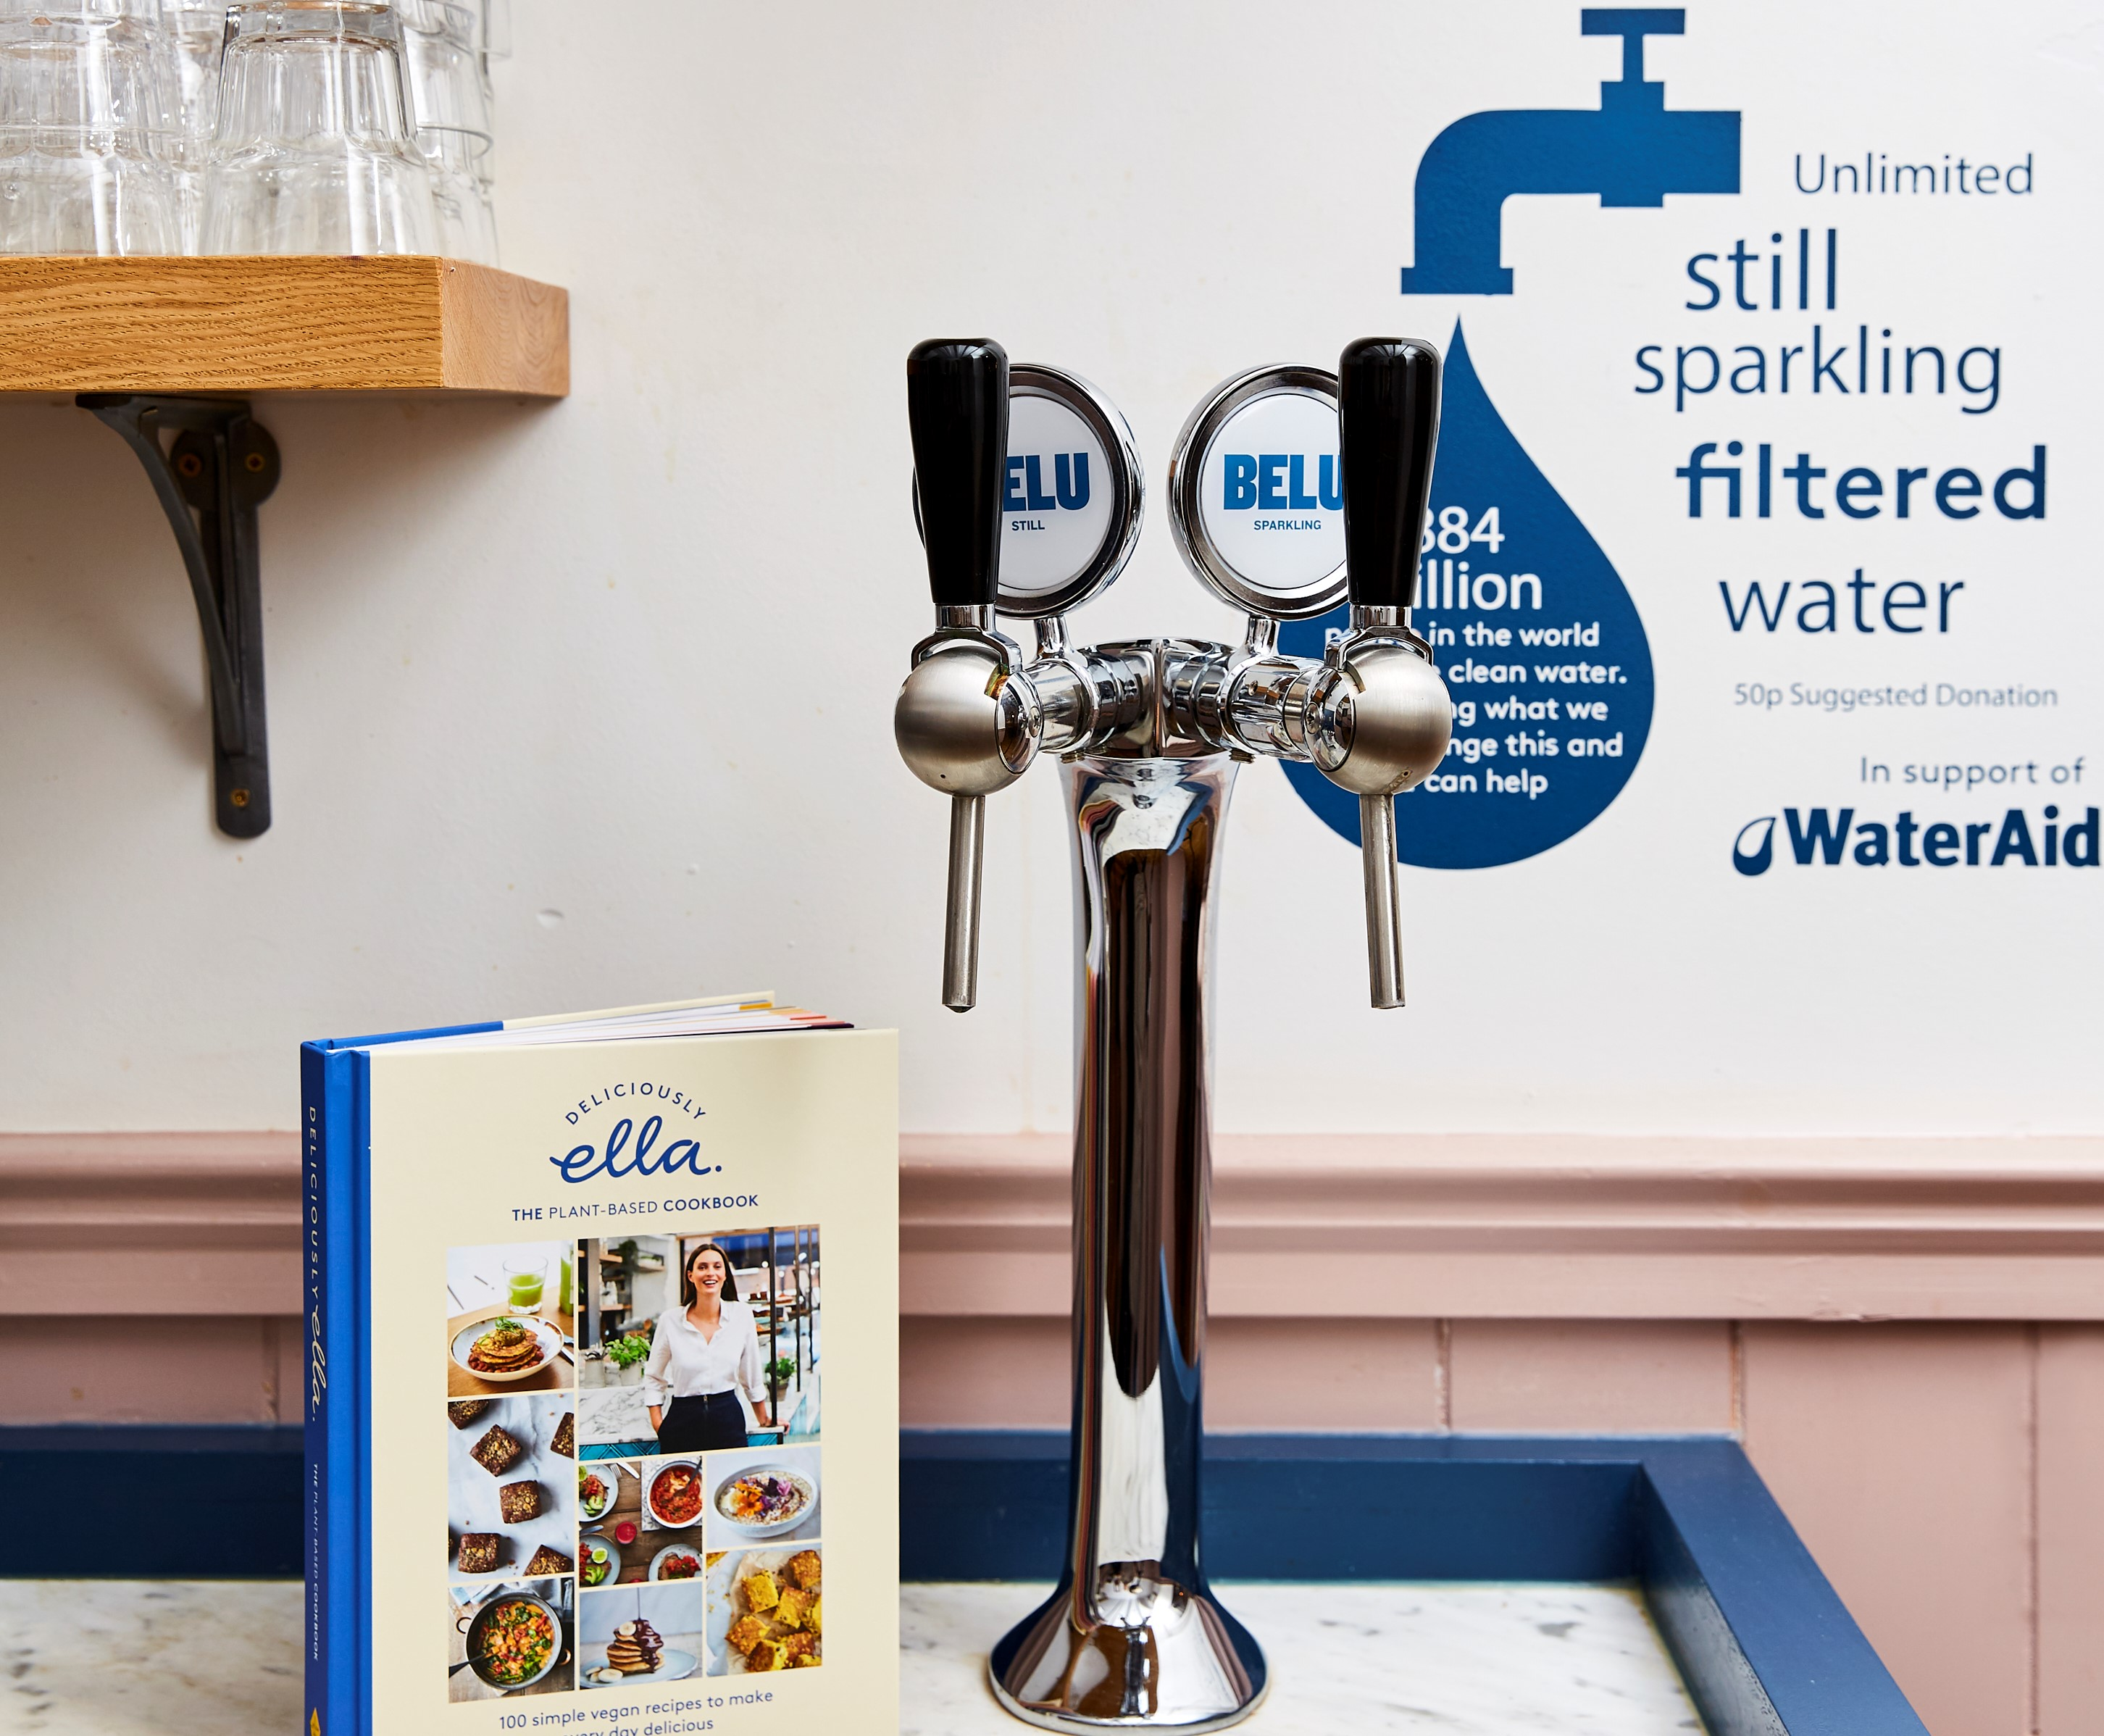 Belu filtration system at Deliciously Ella